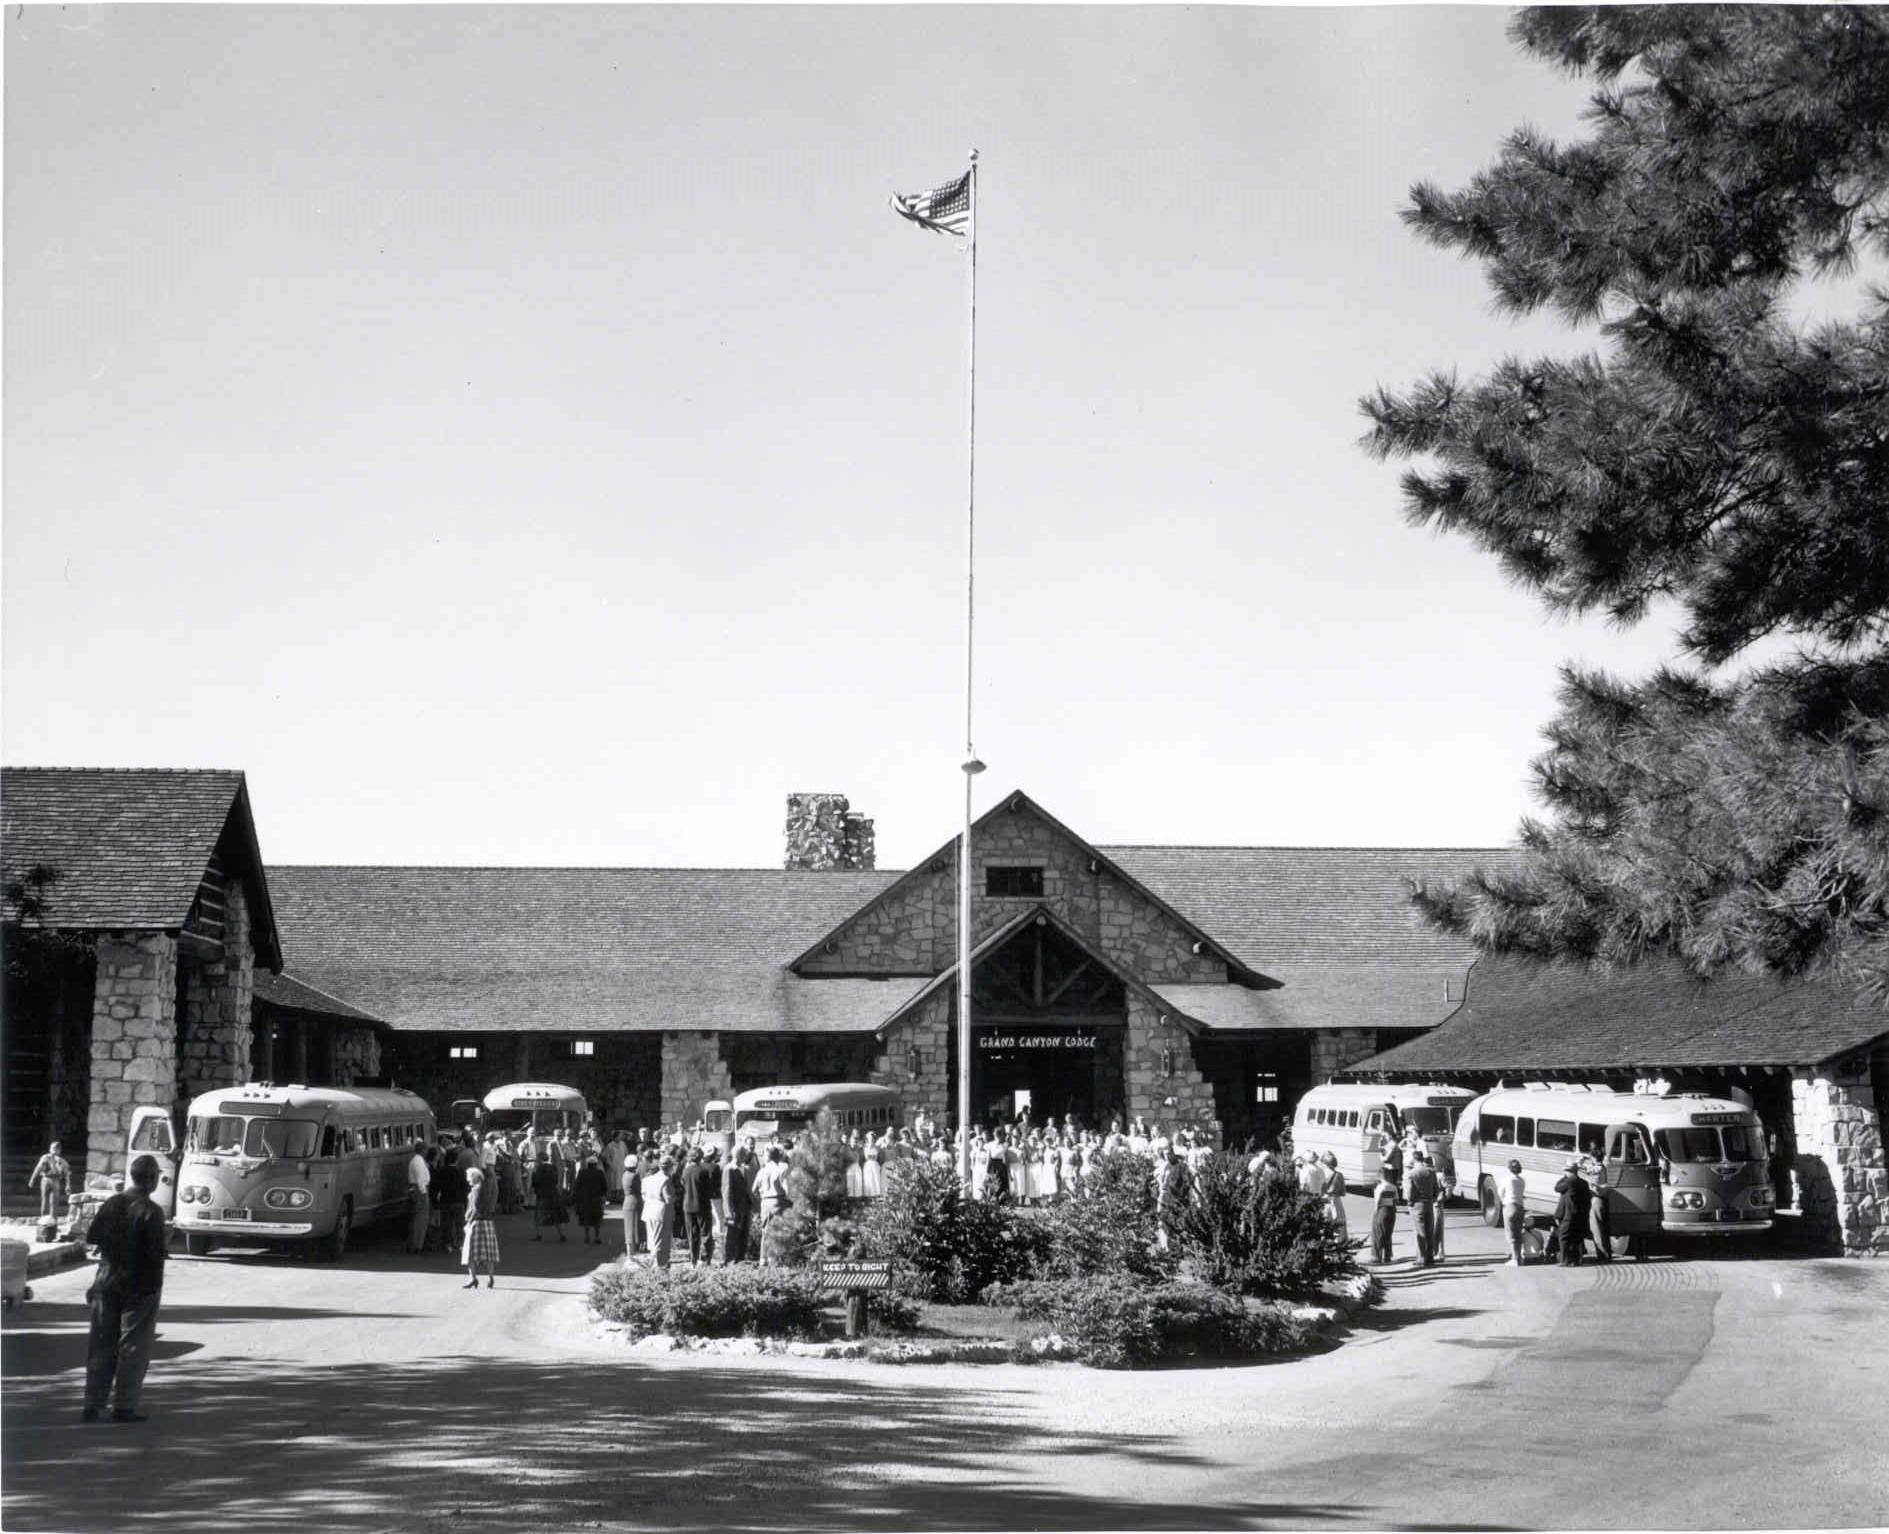 The Grand Canyon Lodge at the North Rim.